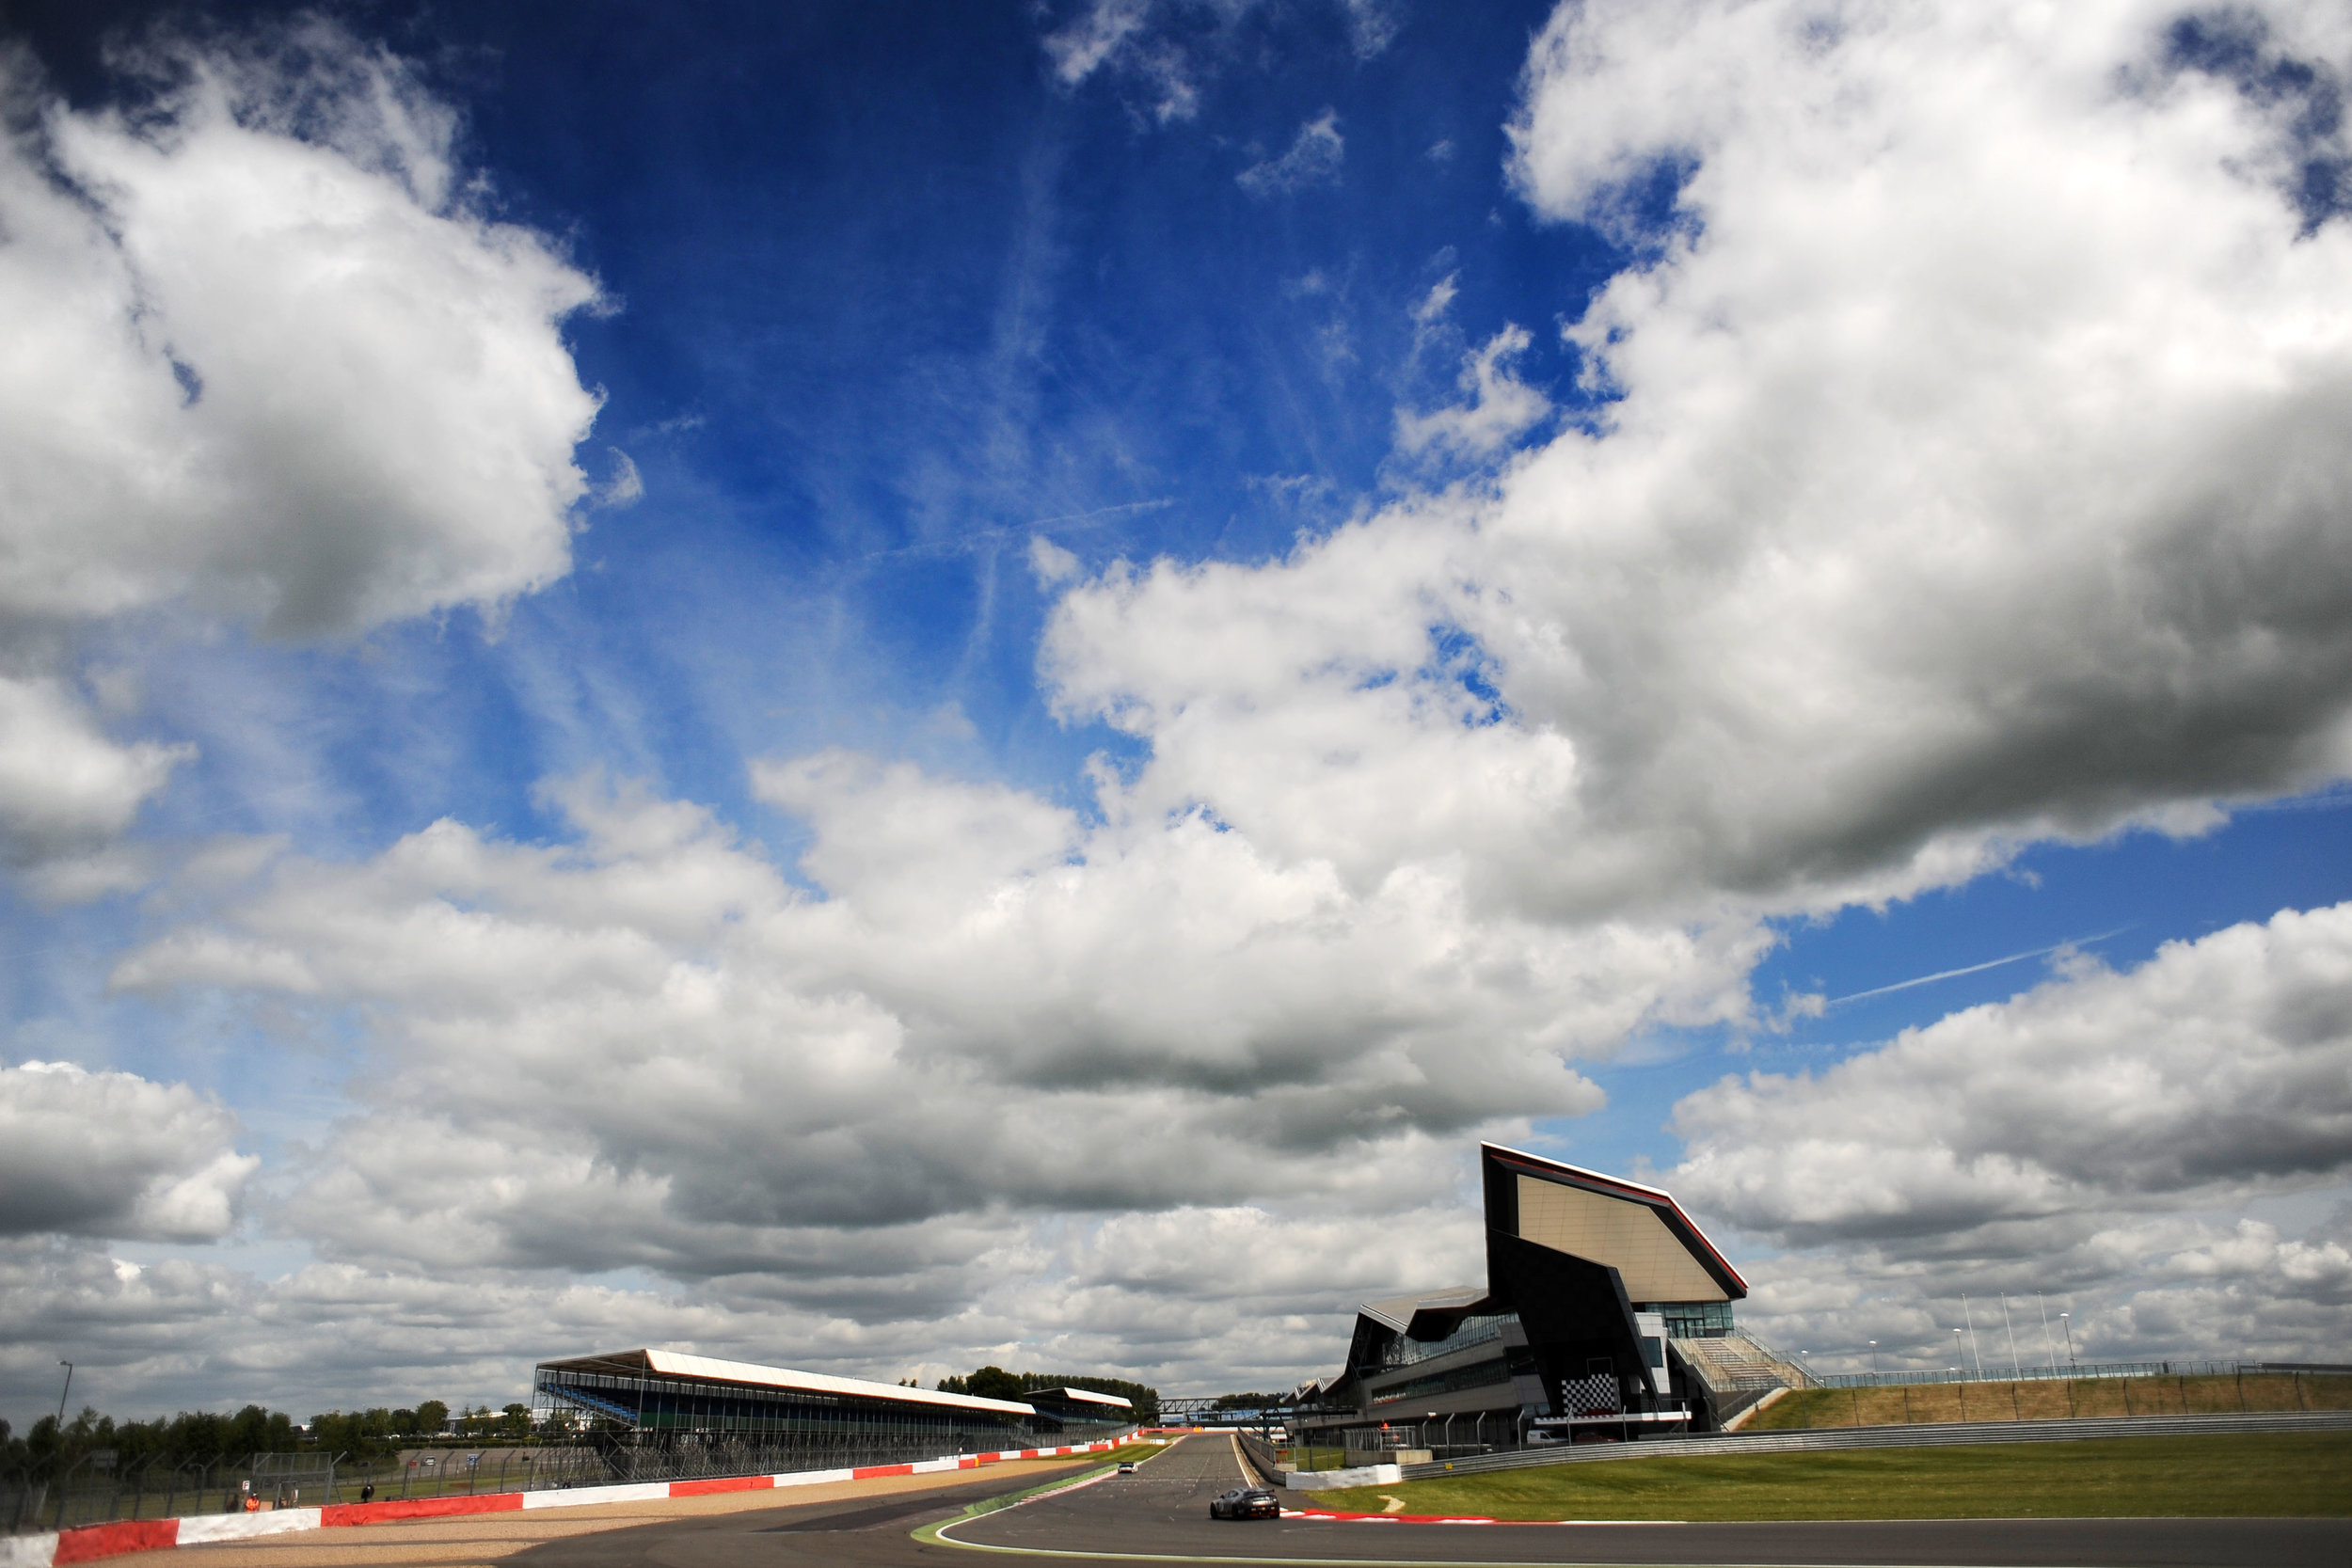 Silverstone joins Greystone GT calendar for first time in 2019